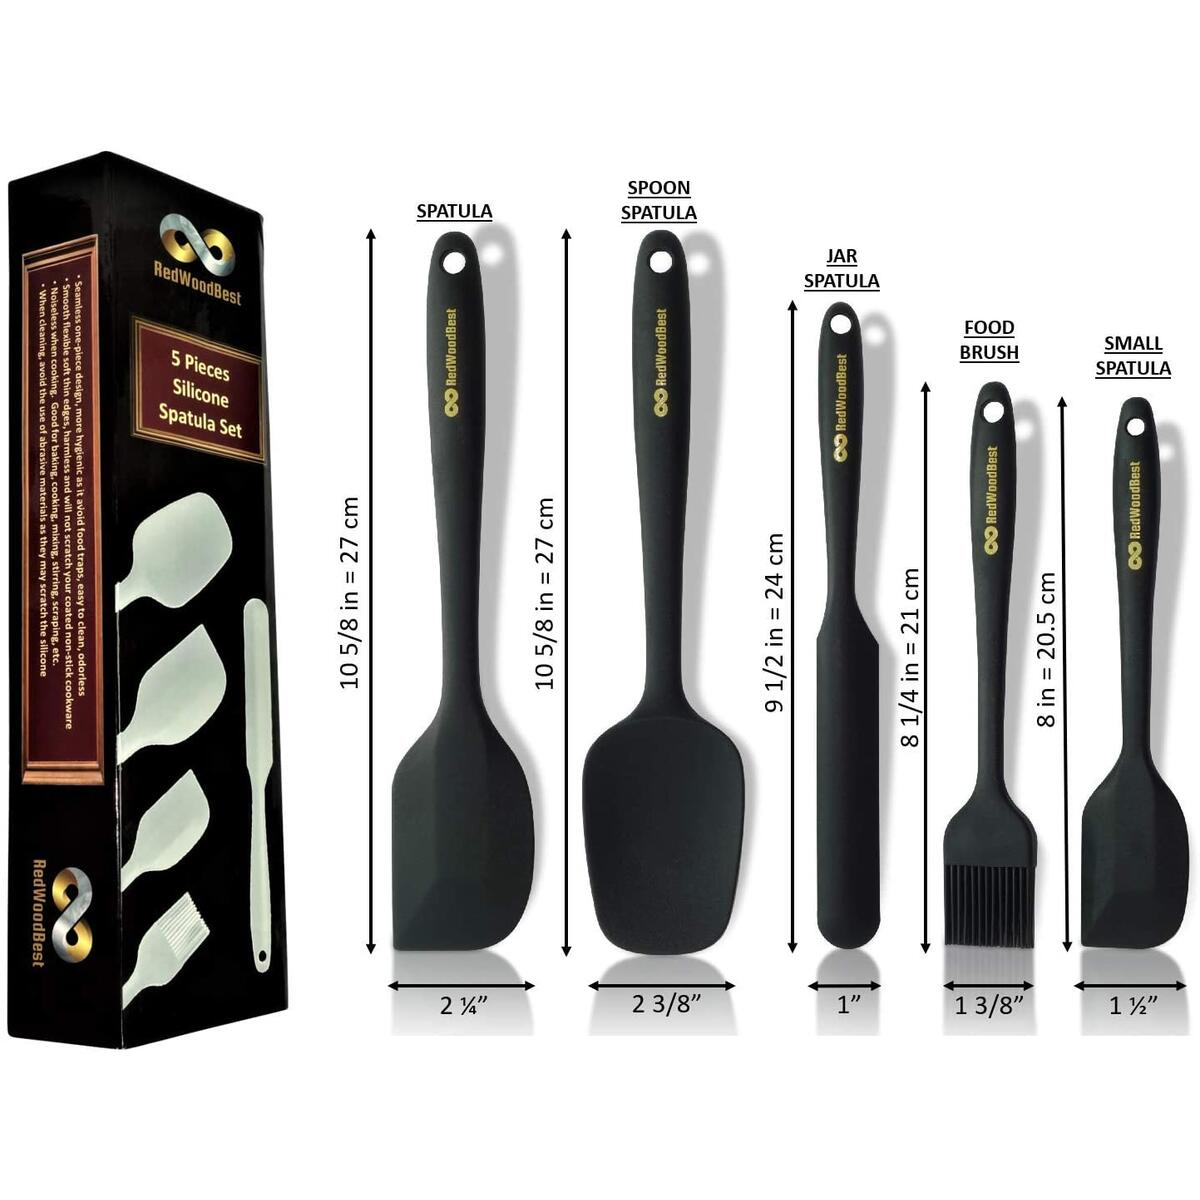 RedWoodBest Heat Resistant Silicone Spatula 5 Set Created for Cooking, Baking and Mixing, One Piece Design, Non-Stick, Strong Stainless Steel Core (Black)